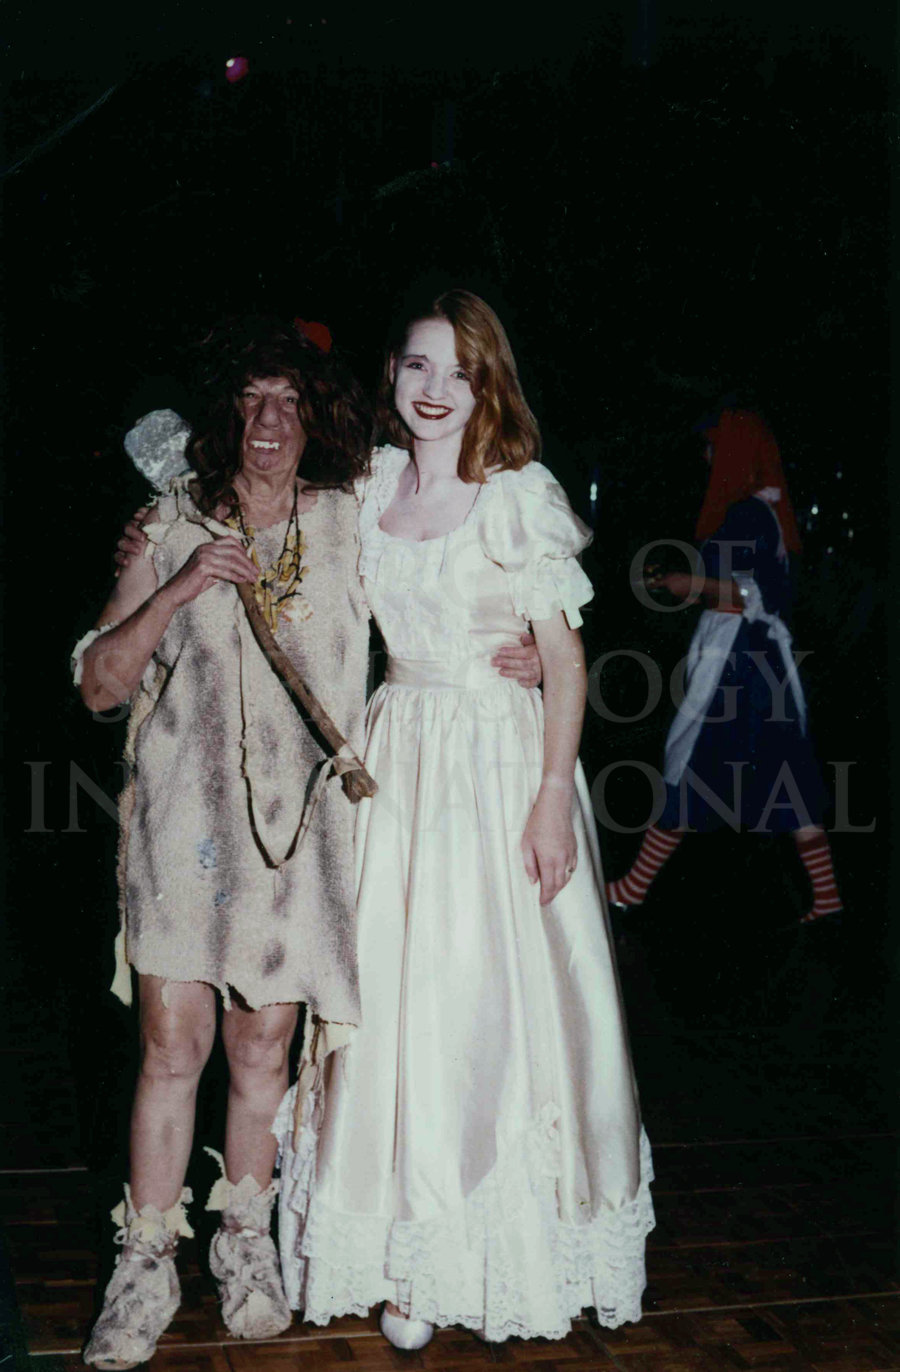 Claire dressed as a Princess at a Halloween Party at Golden Era